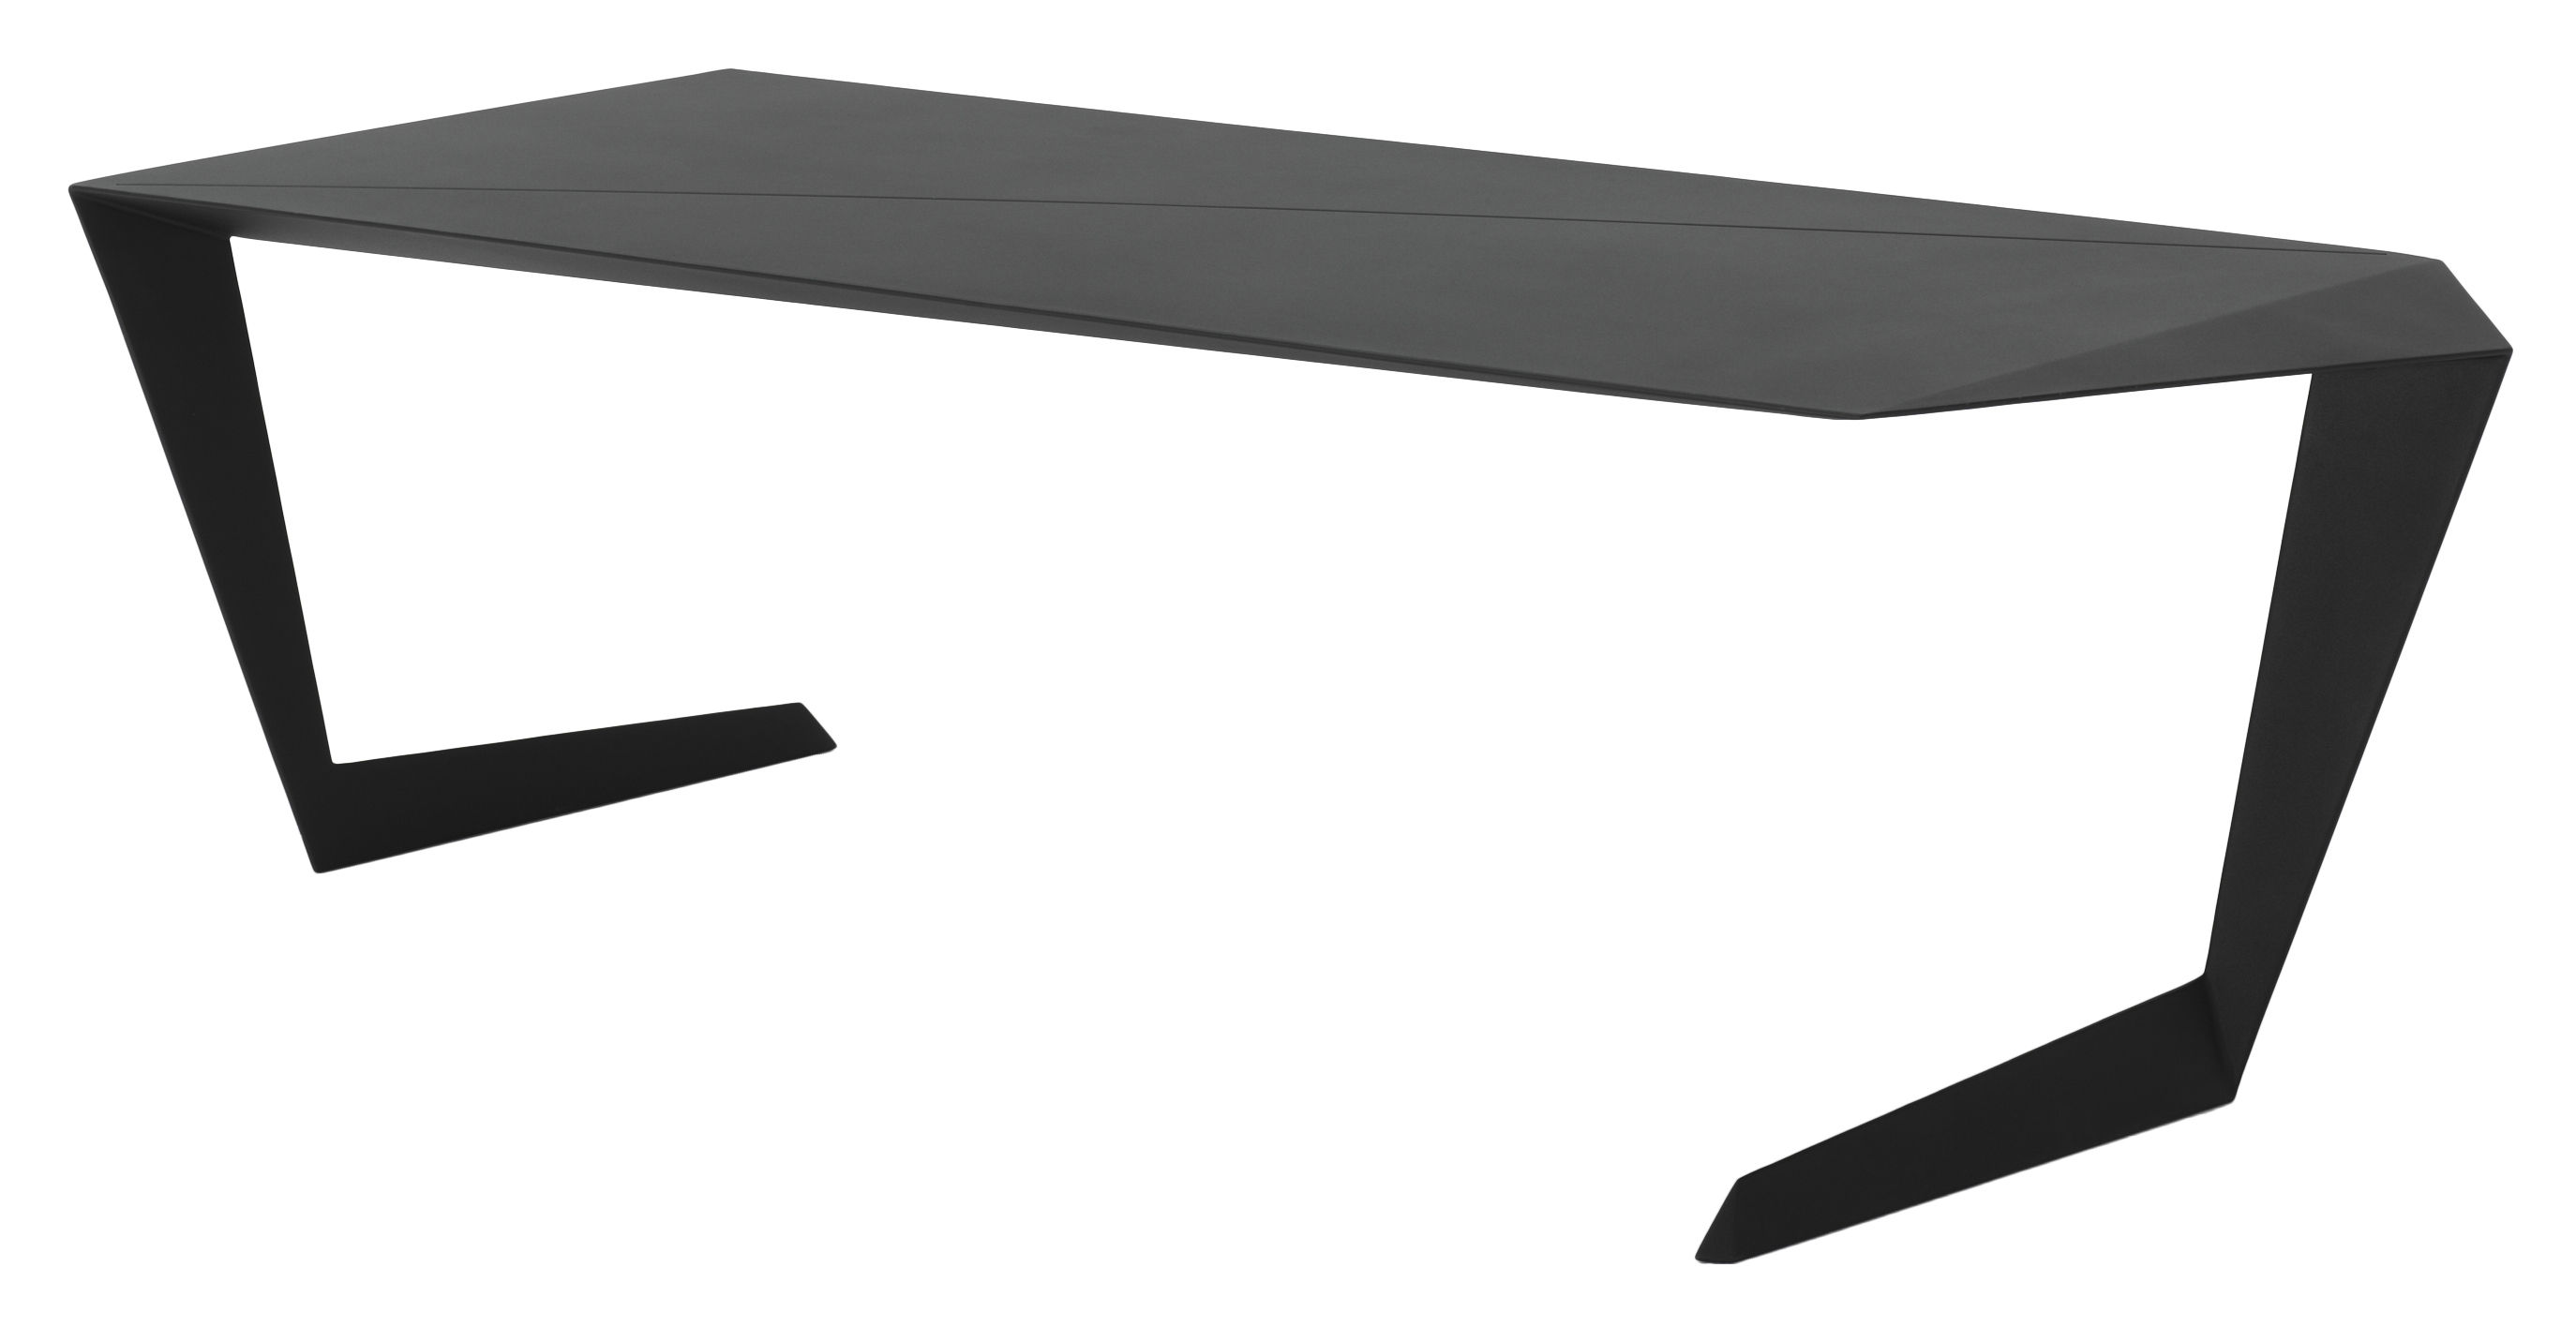 Furniture - Office Furniture - N-7 Table by Casamania - Black - Varnished aluminium